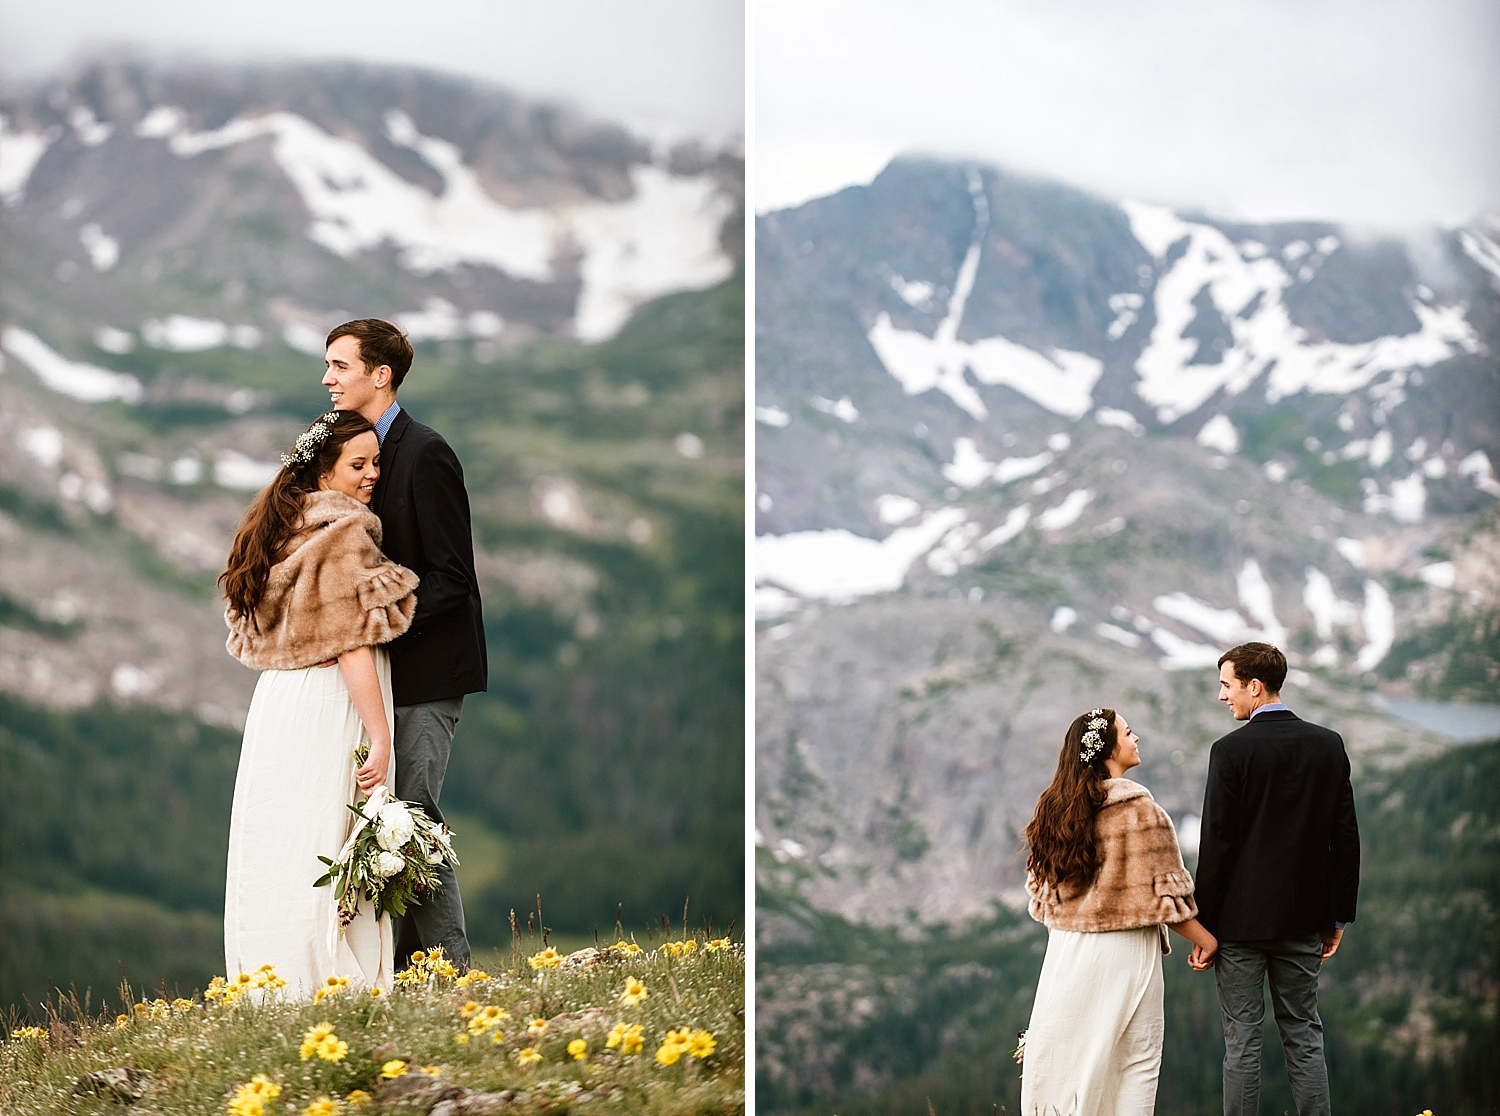 I have fallen in love with Jessica and Edward's mountain elopement photoshoot! I can't get enough of these gorgeous mountain wedding pictures! | RMNP wedding photos by Estes Park elopement photographer, Maddie Mae.